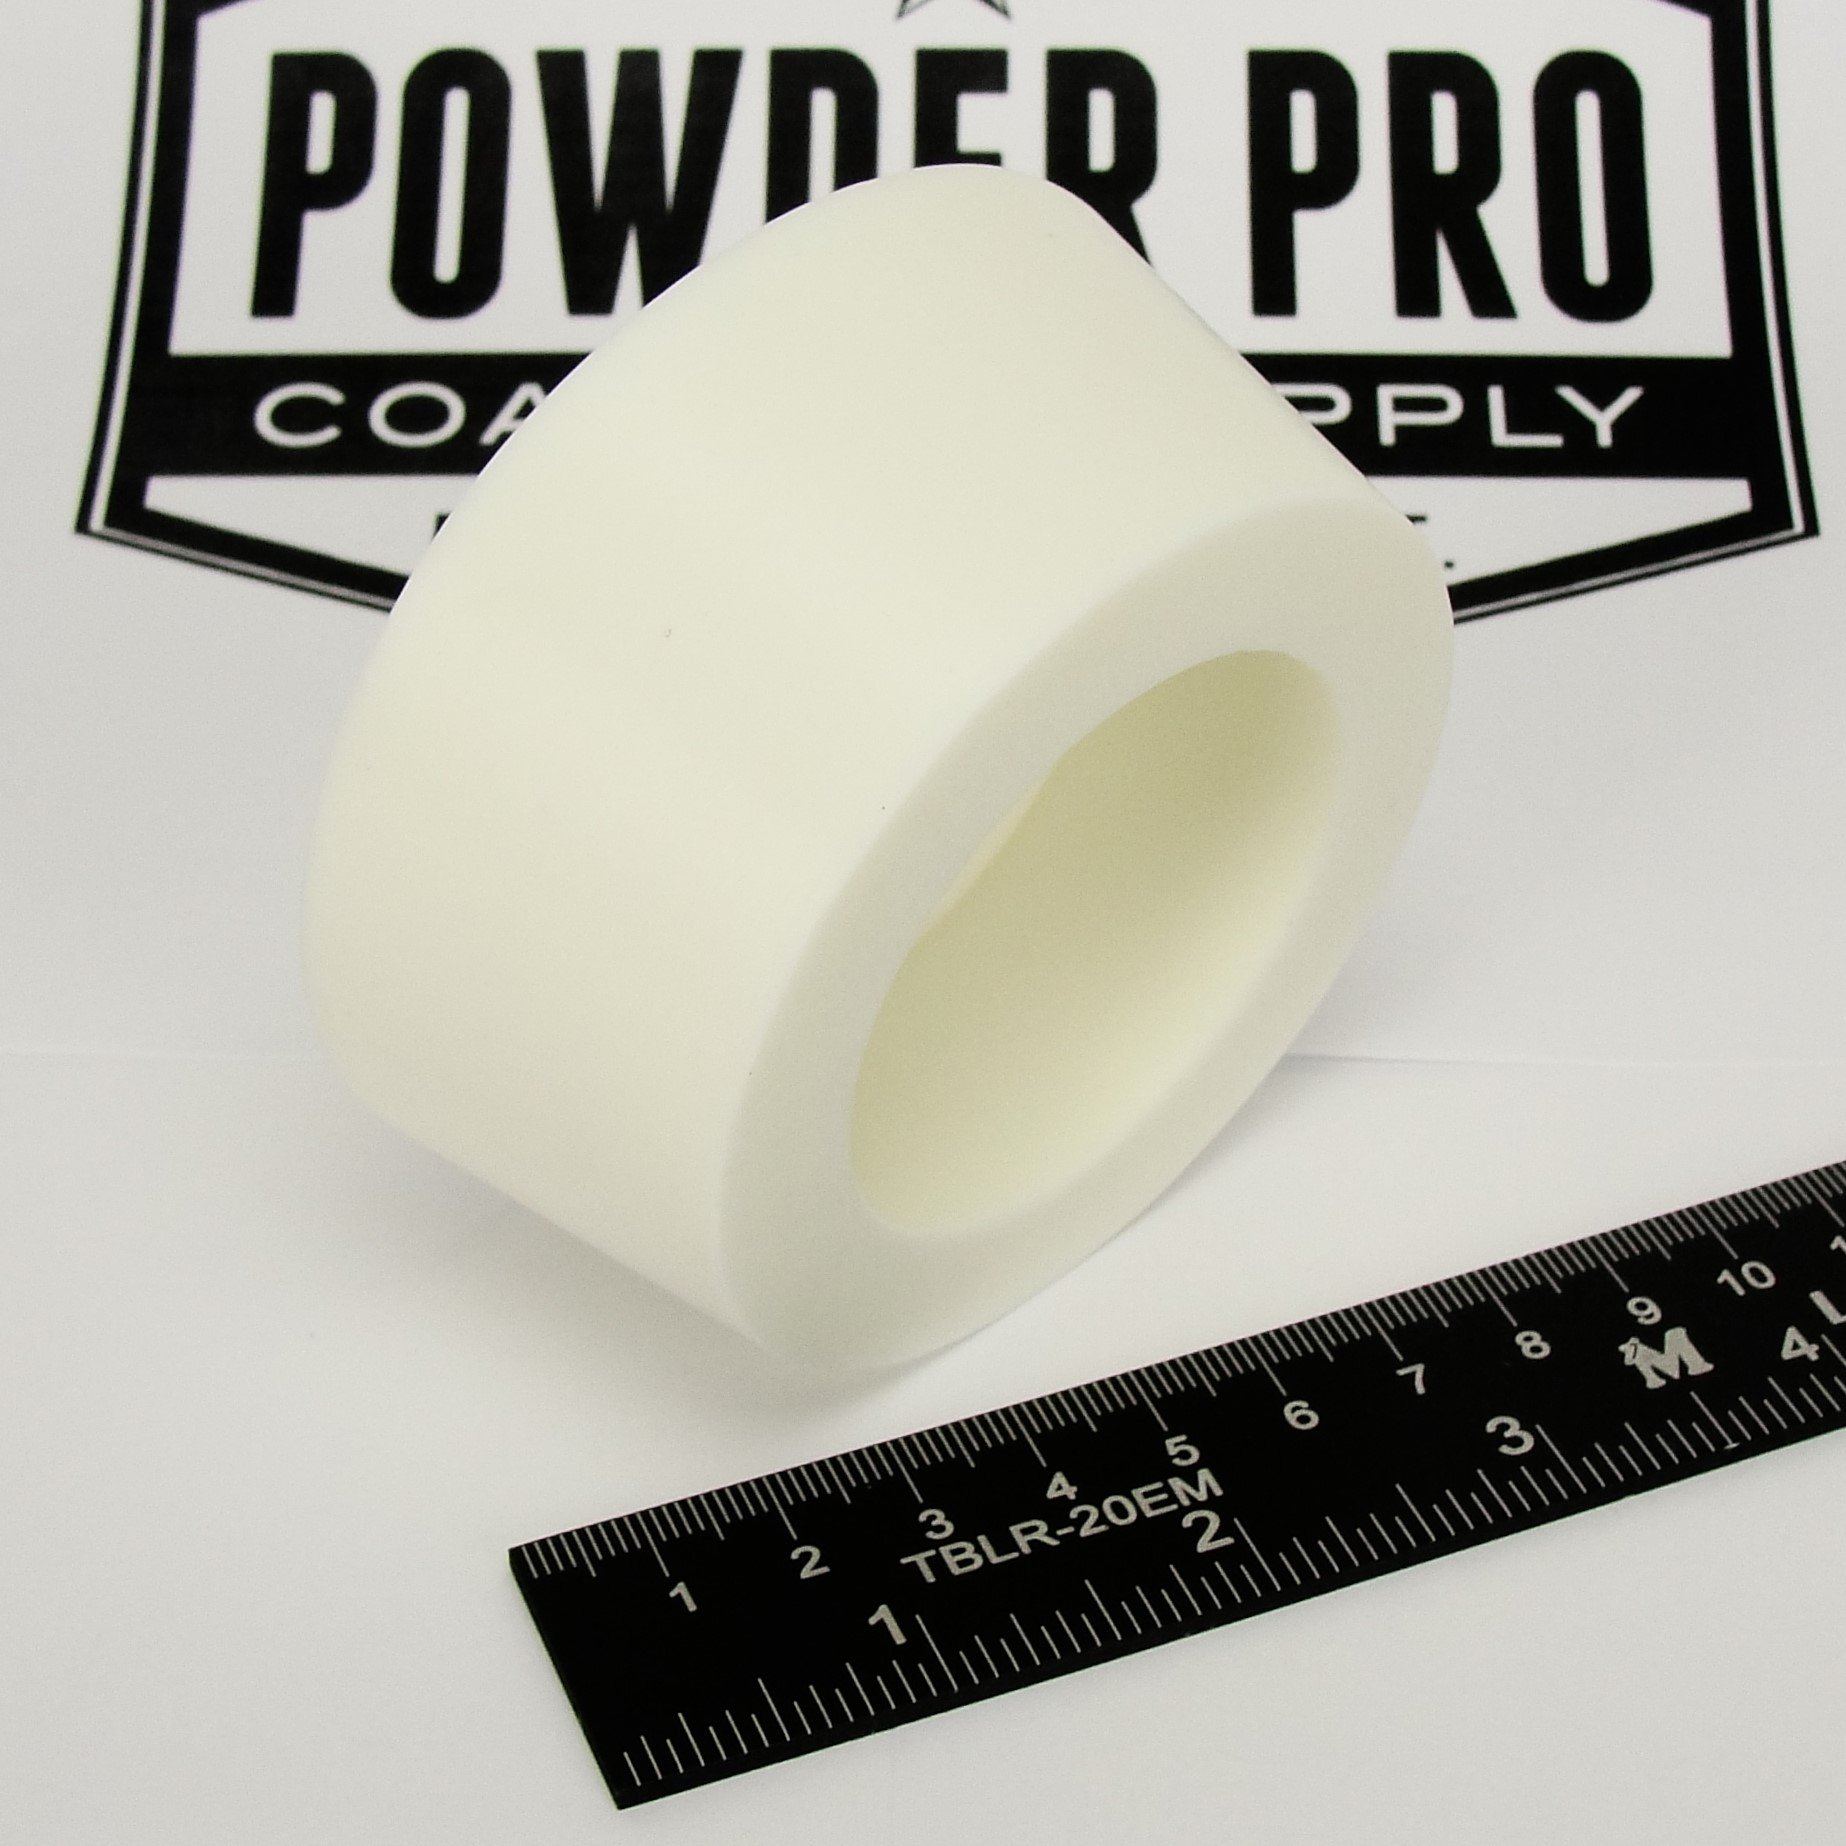 (1) 3'' x 3.5'' #14 High Temp Silicone Rubber Powder Coating Paint Masking Plug - Great for Customizing YETI, RTIC, OZARK Cups and Tumblers